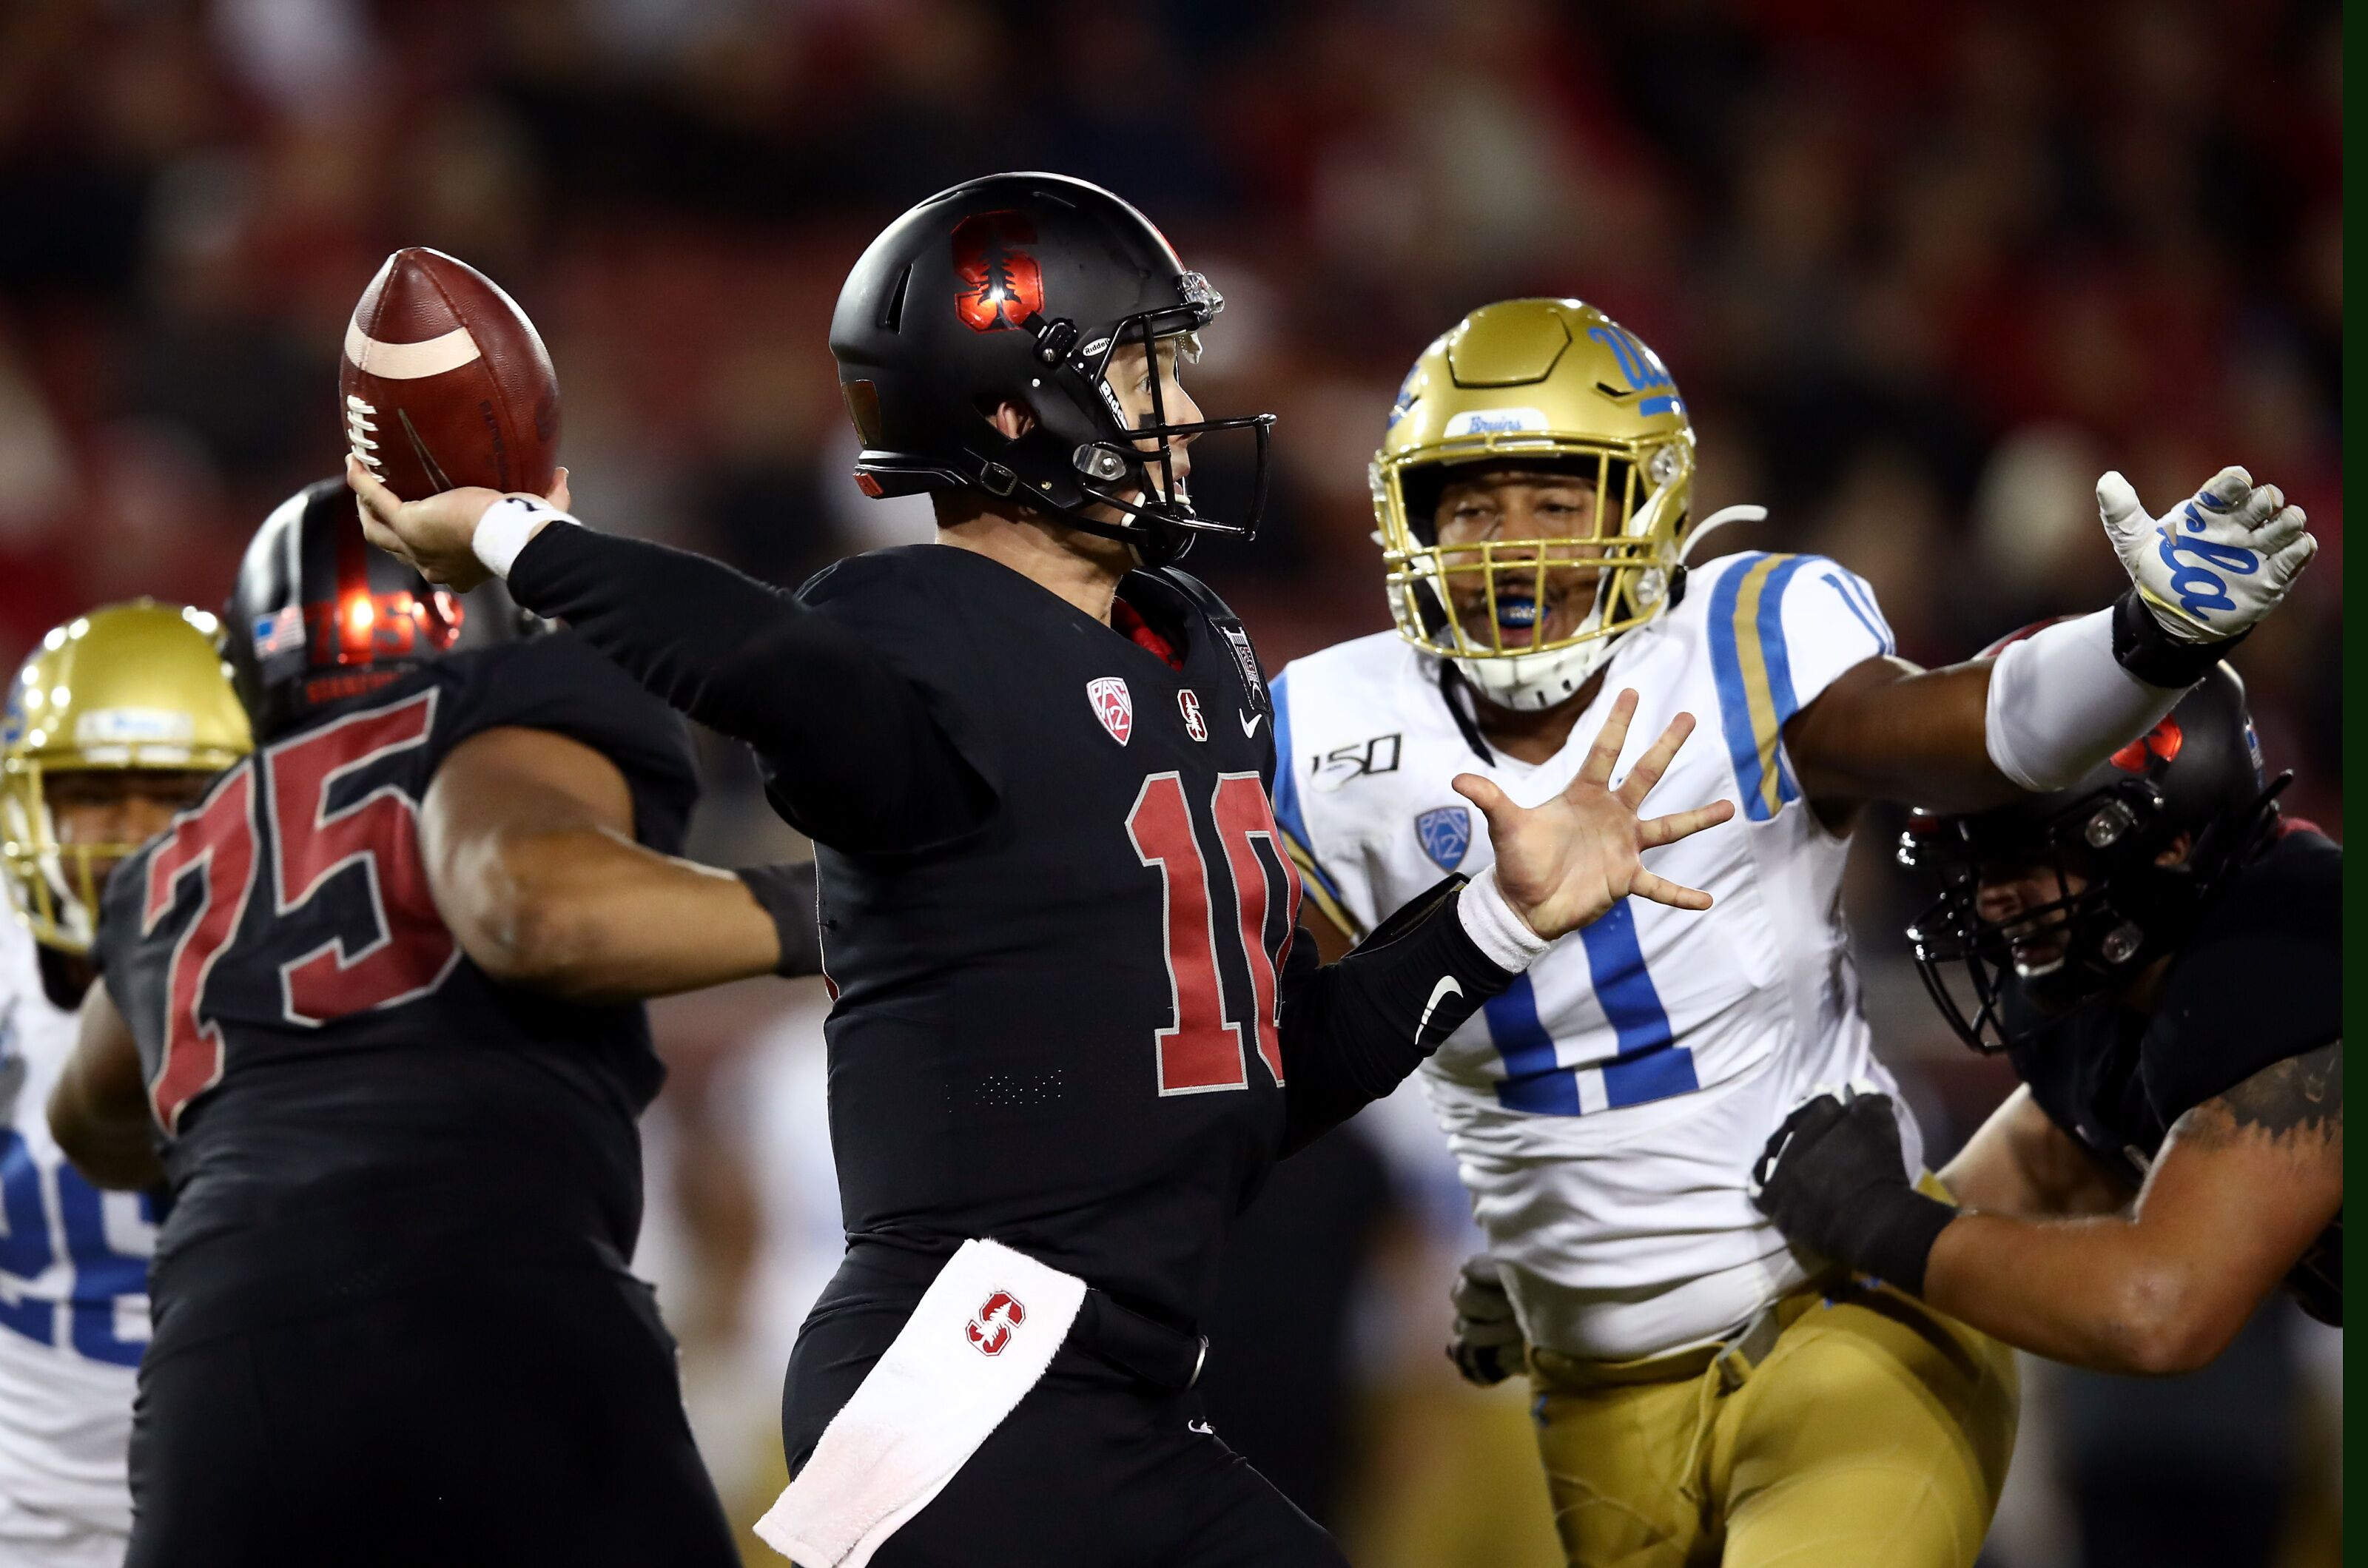 Stanford Football: Cardinal lose must-win game to the lowly UCLA Bruins